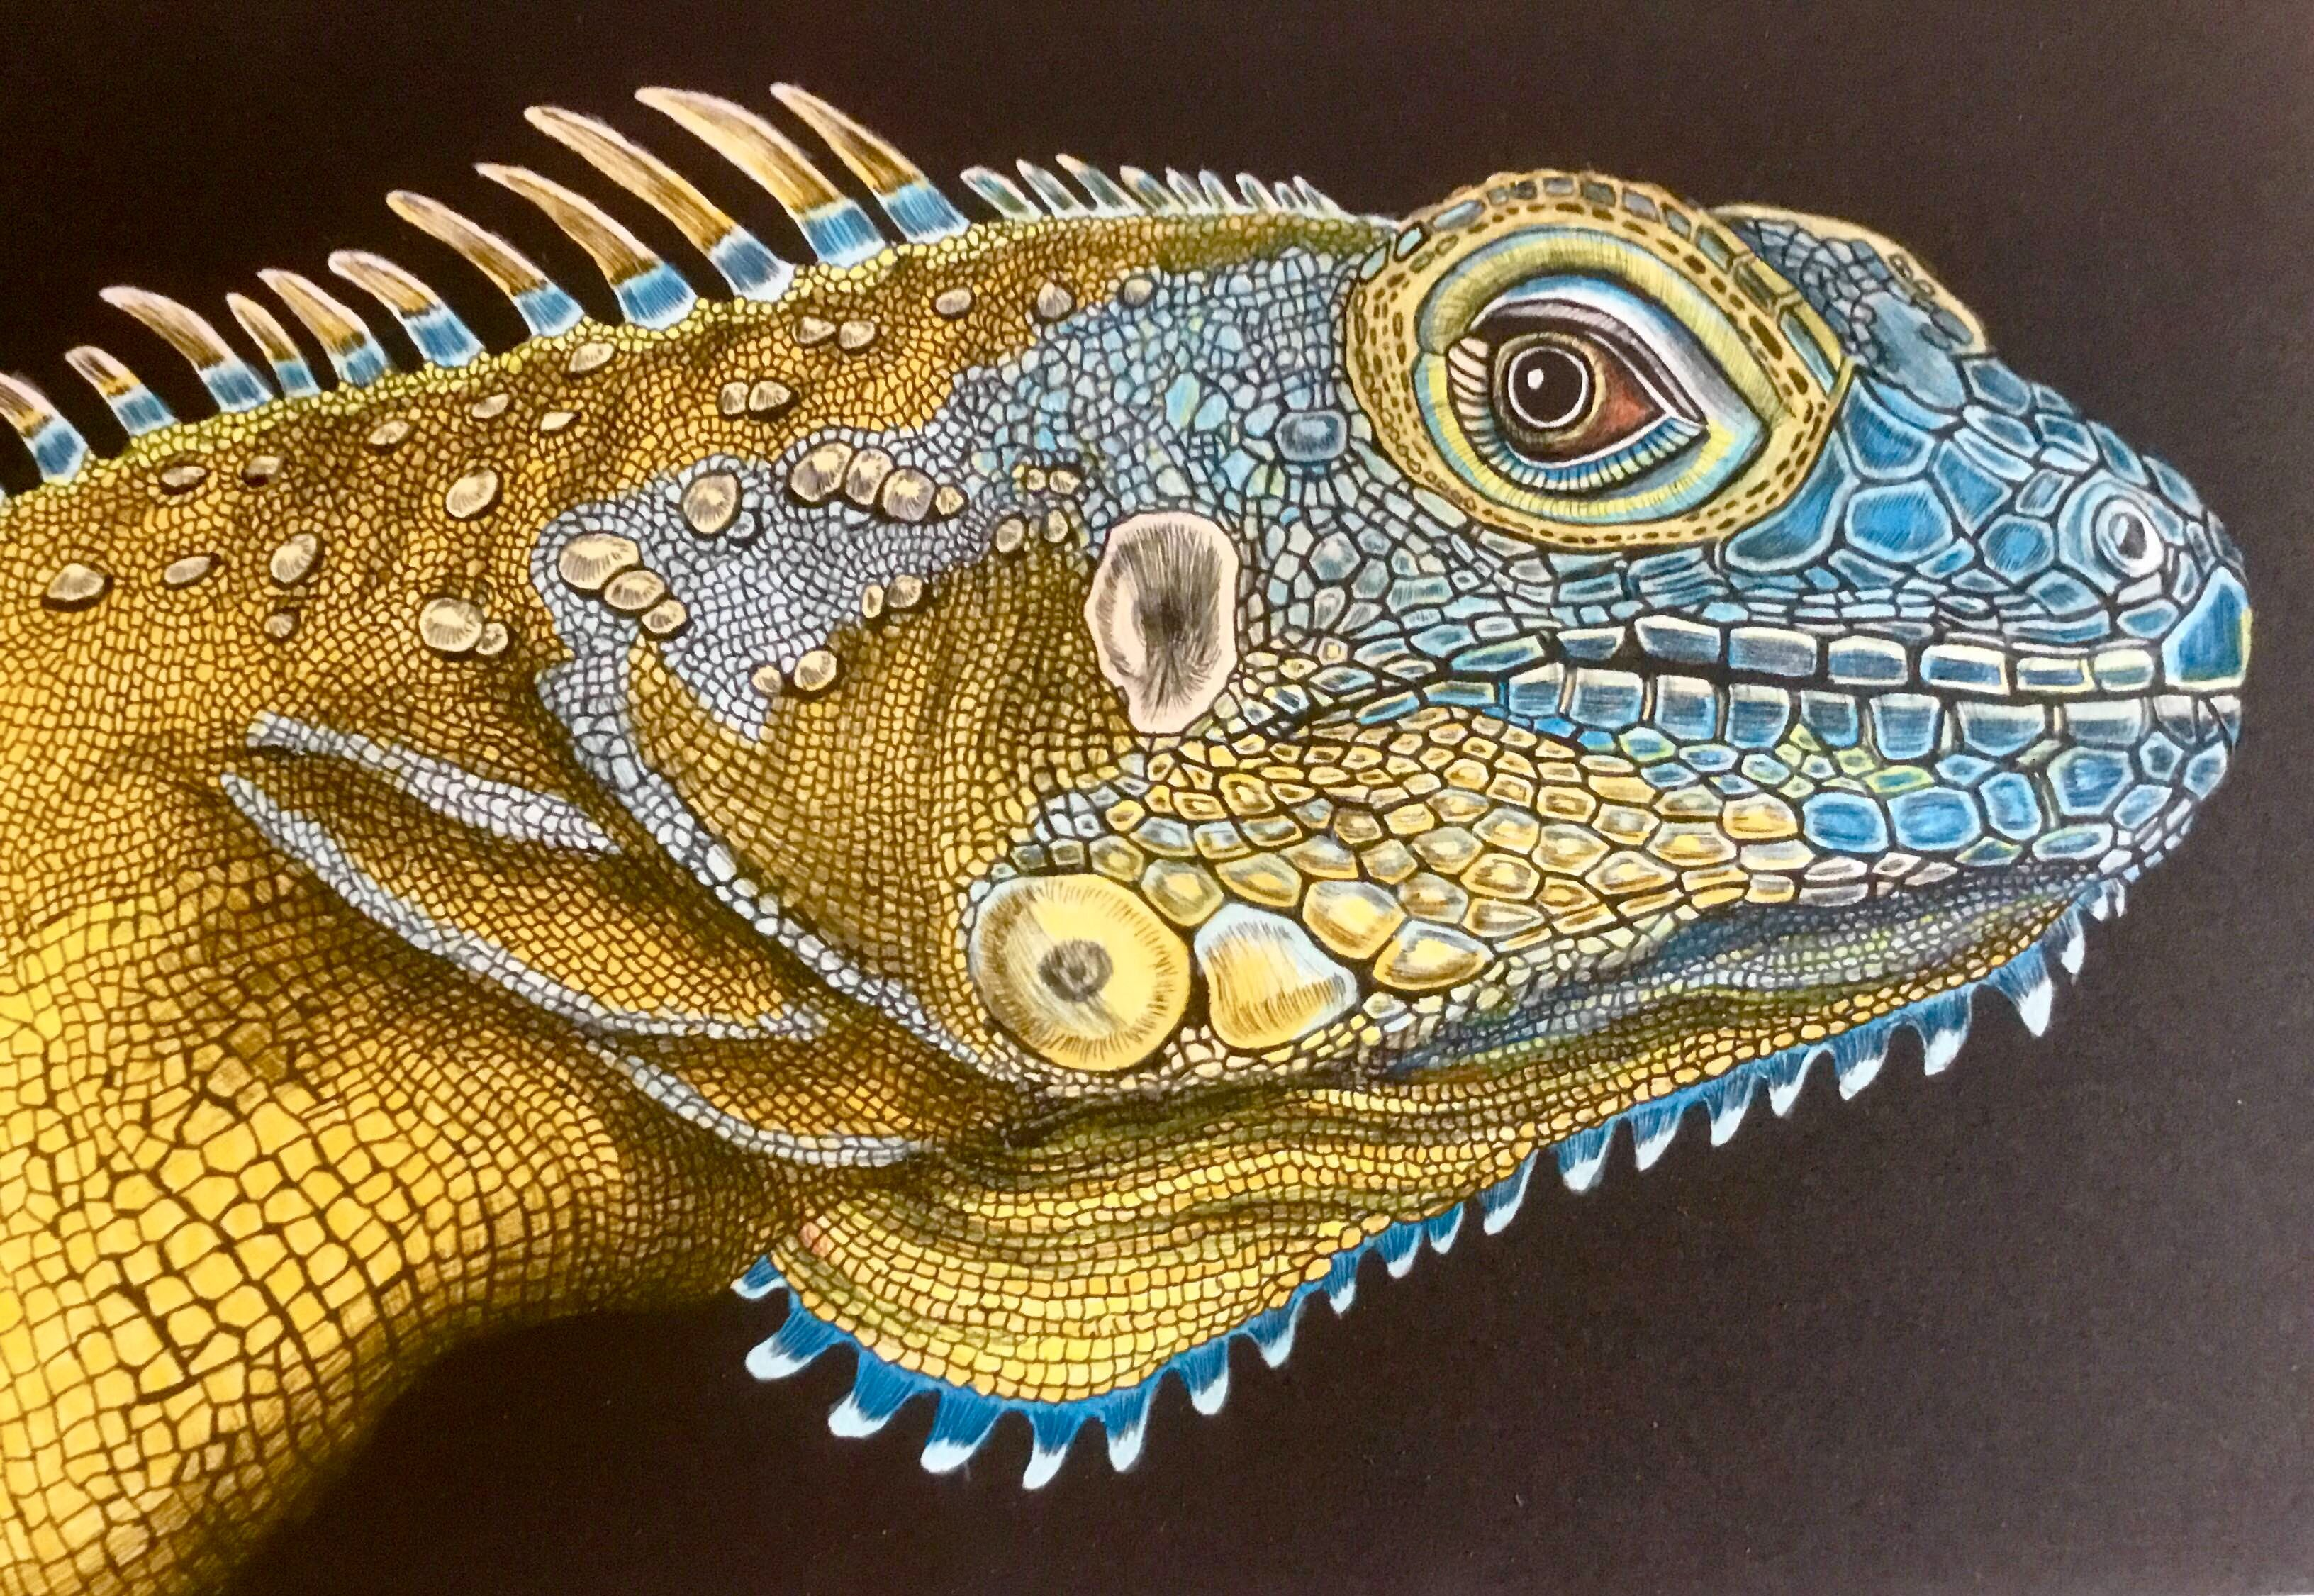 iguana 1 page 19 by jeff m intricate ink animals in detail